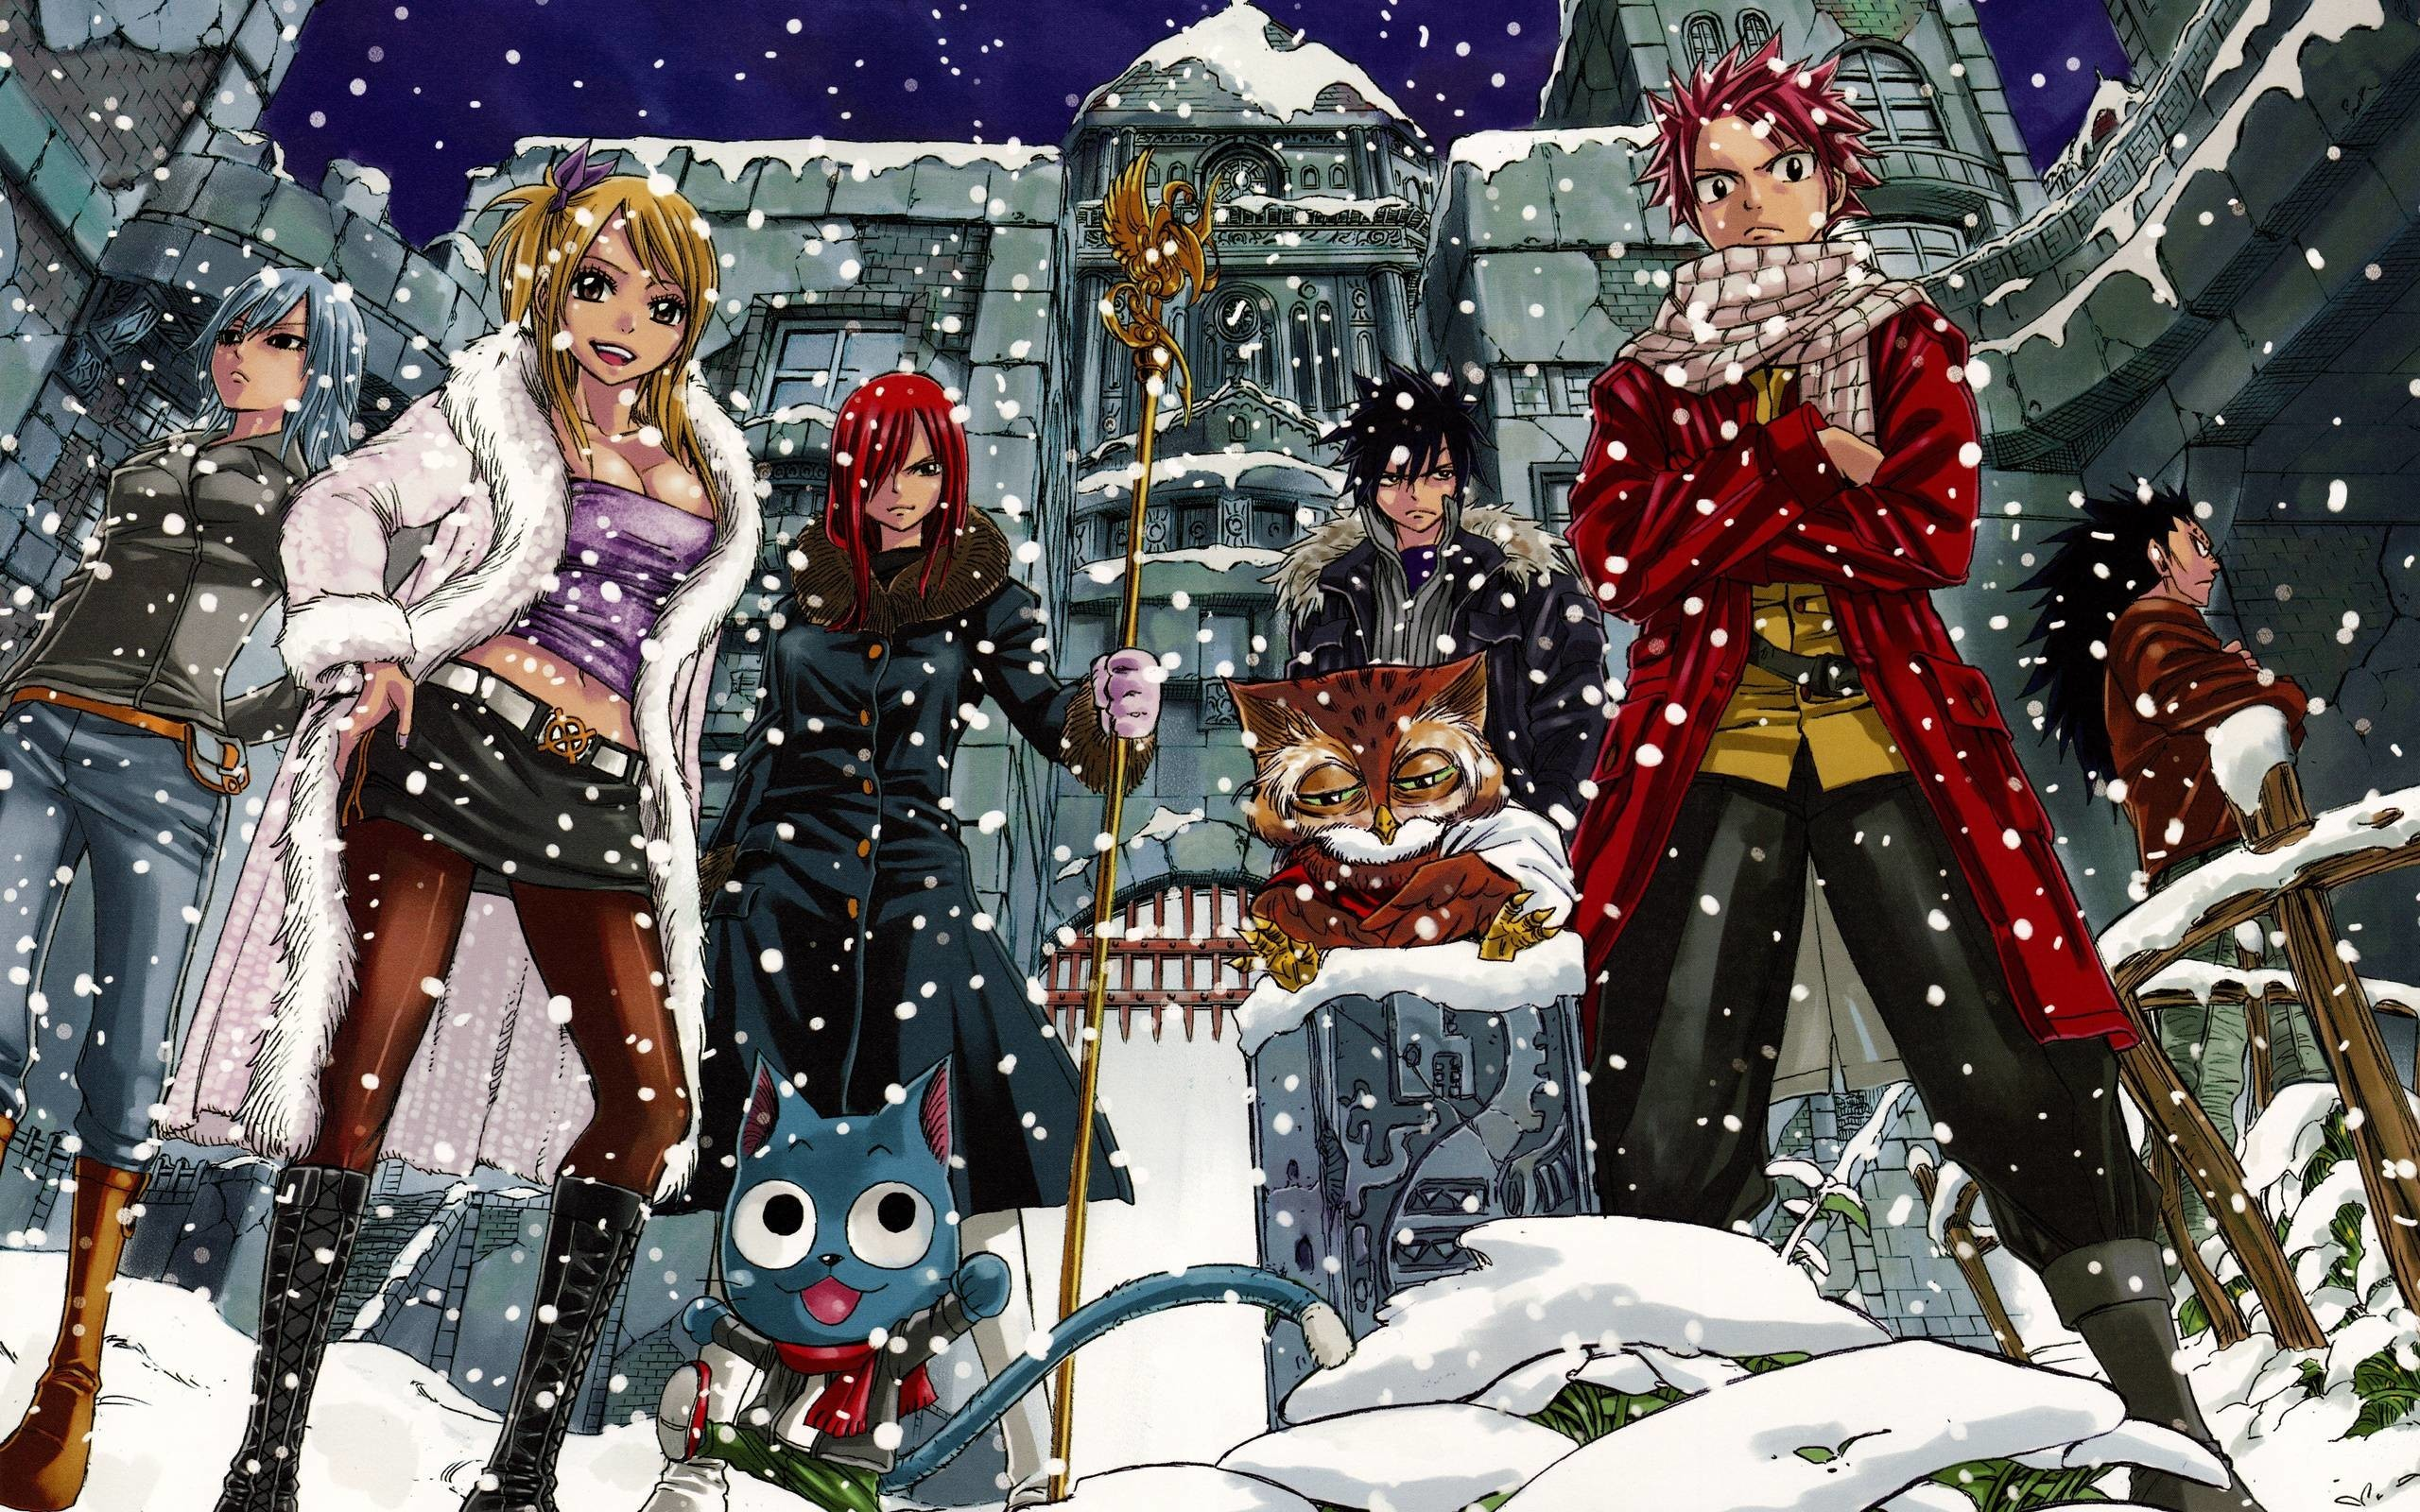 2560x1600  Fairy Tail Wallpapers - Fairy Tail Wallpaper (35304333) - Fanpop